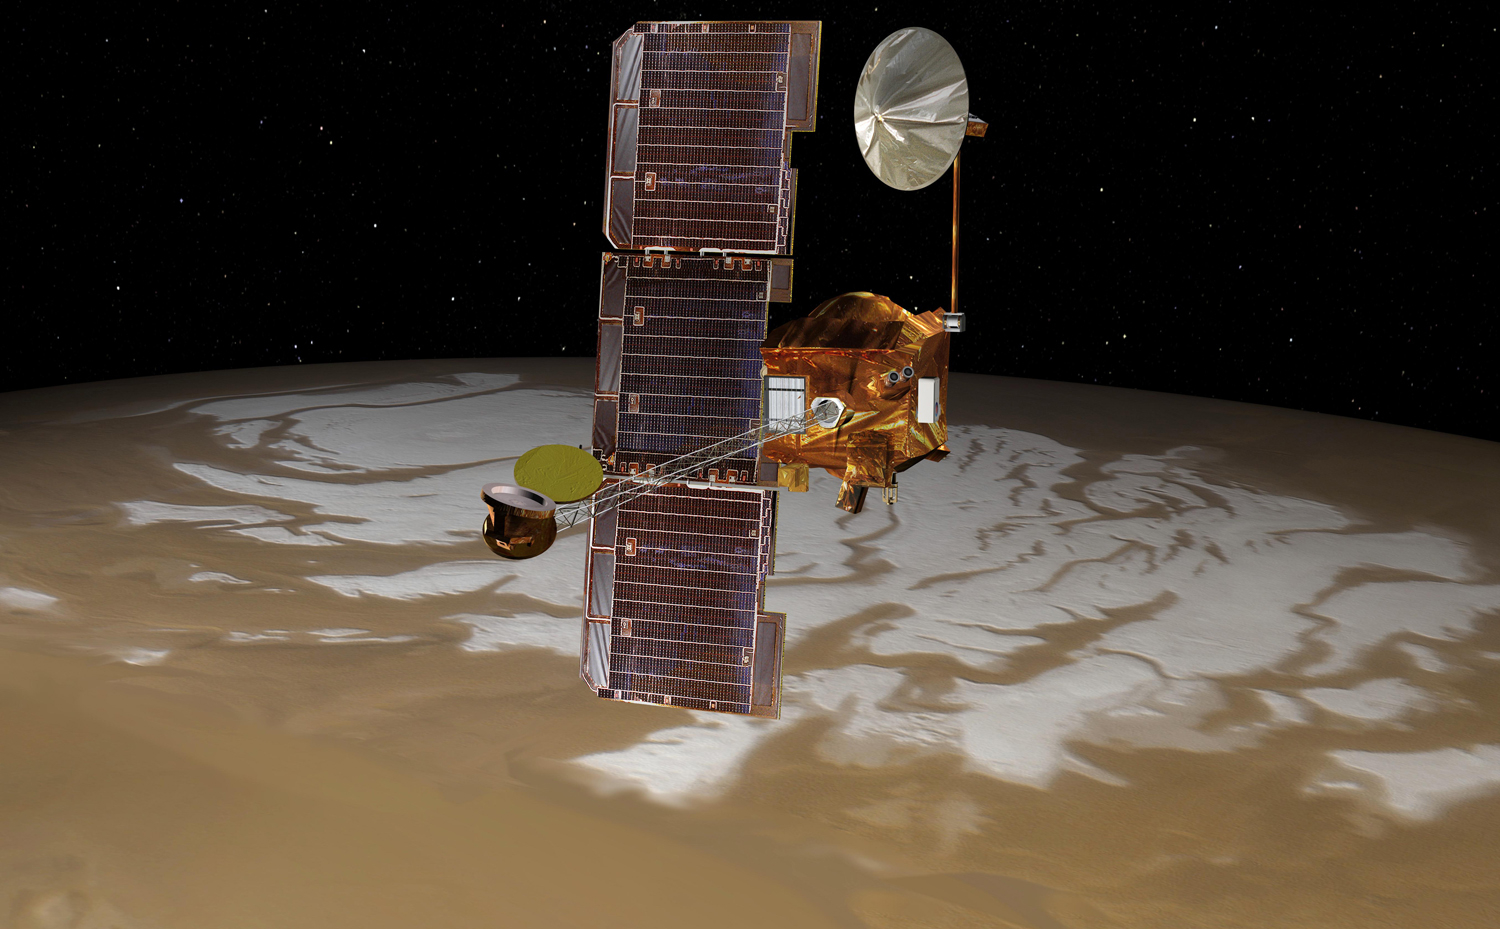 Odyssey over Mars' South Pole